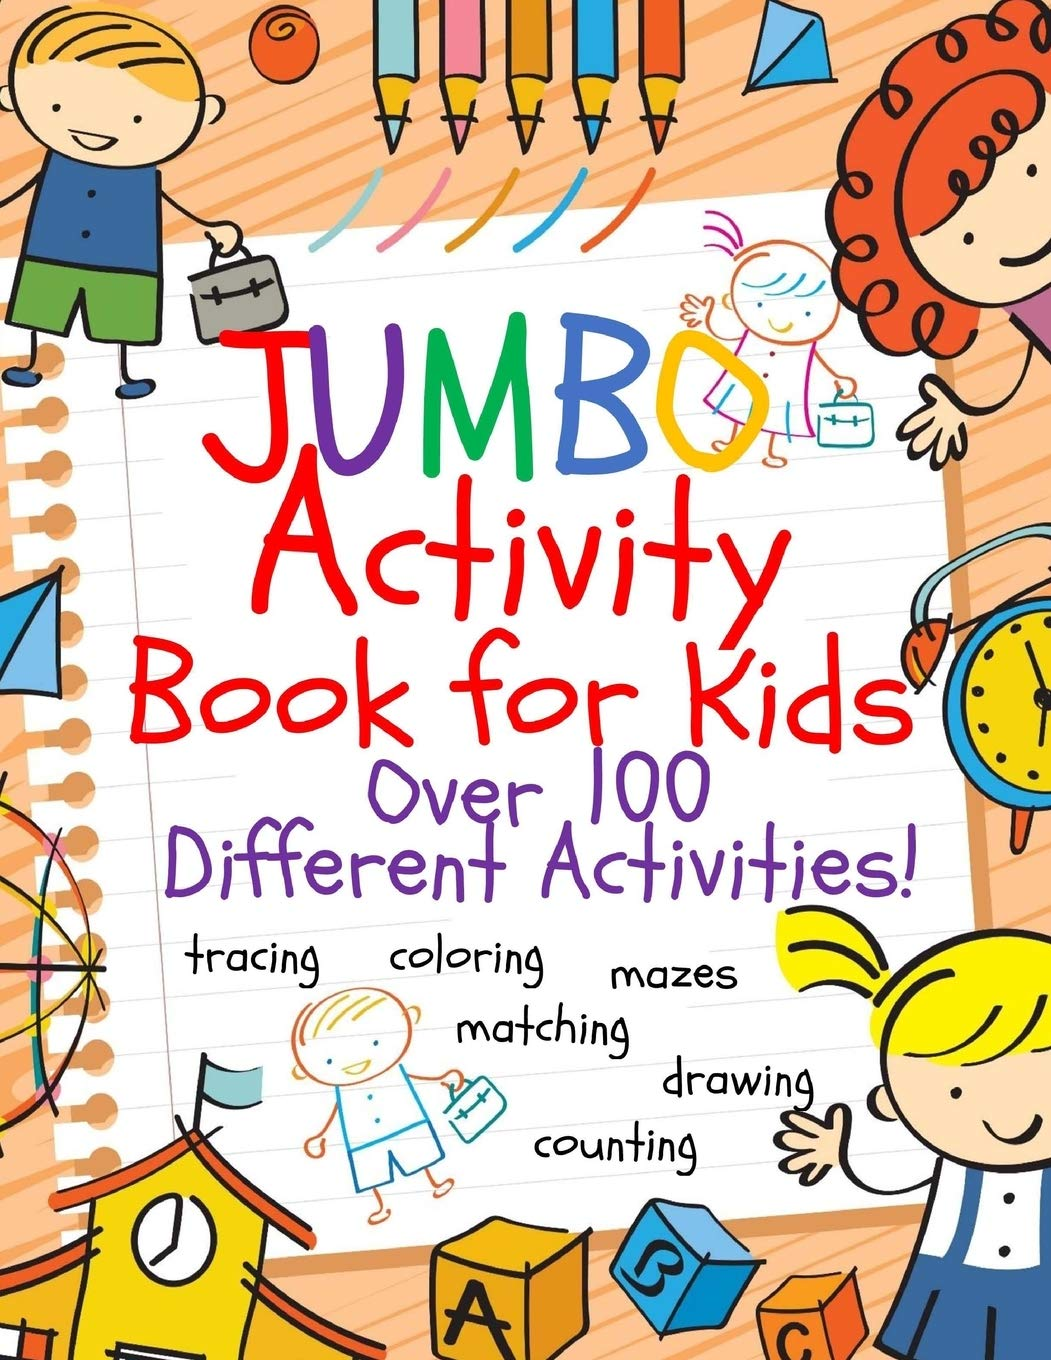 - Amazon.com: Jumbo Activity Book For Kids: Jumbo Coloring Book And